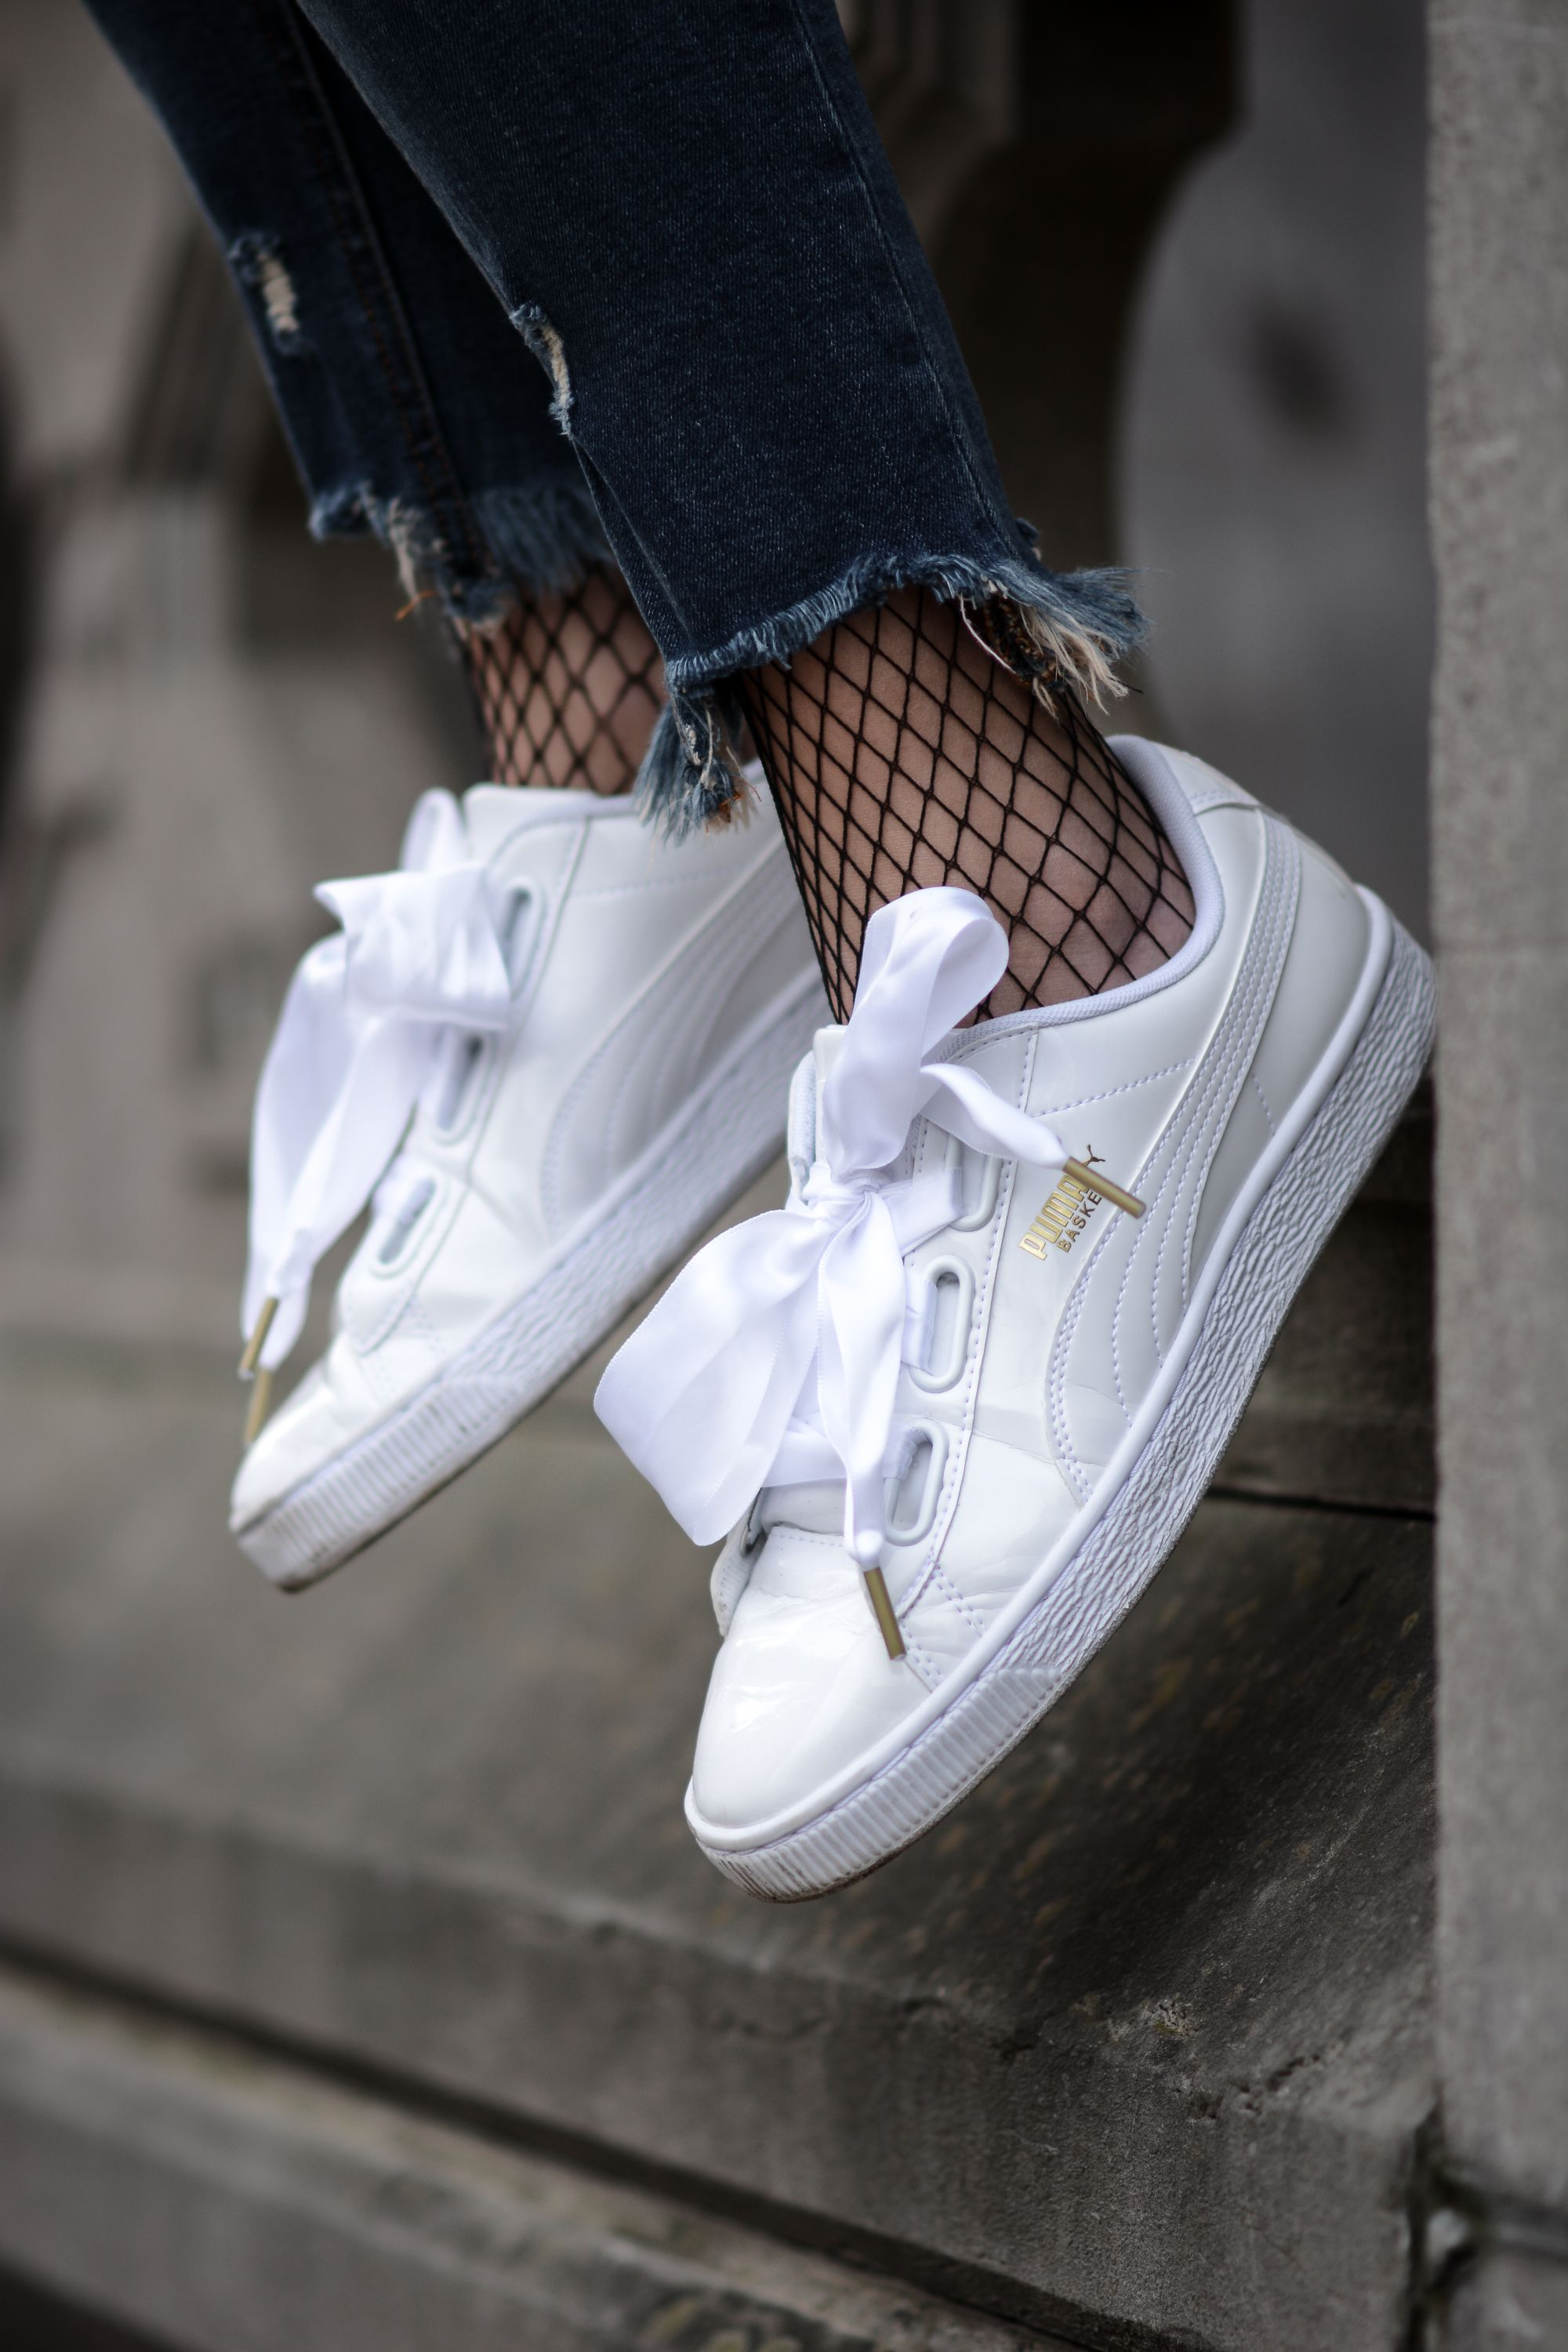 577ac424054 Puma Basket Heart Sneakers In Patent White ASOS Women Teen Trendy Metallic  Shiny  ad